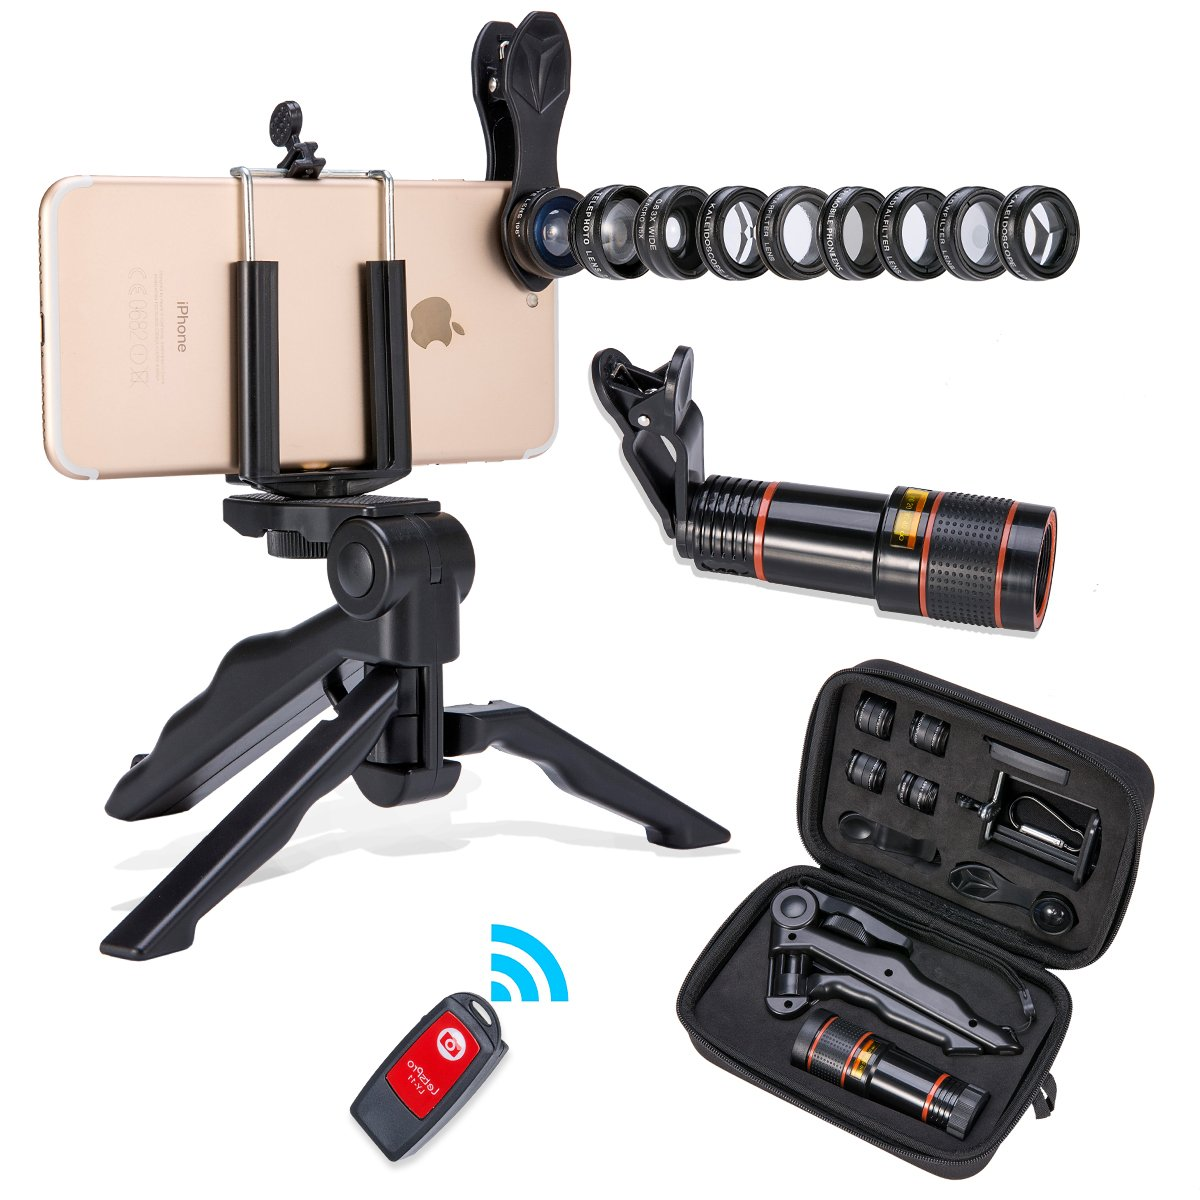 Akinger 13 in 1 Camera Phone Lens,New Generation Zoom Telephoto Lens+Fisheye +Wide Angle Lens&MacroLens+ Filter Lens+Kaleidoscope Lens+Selfie Remote Control and Tripod for iPhone and Other Smartphone by Akinger